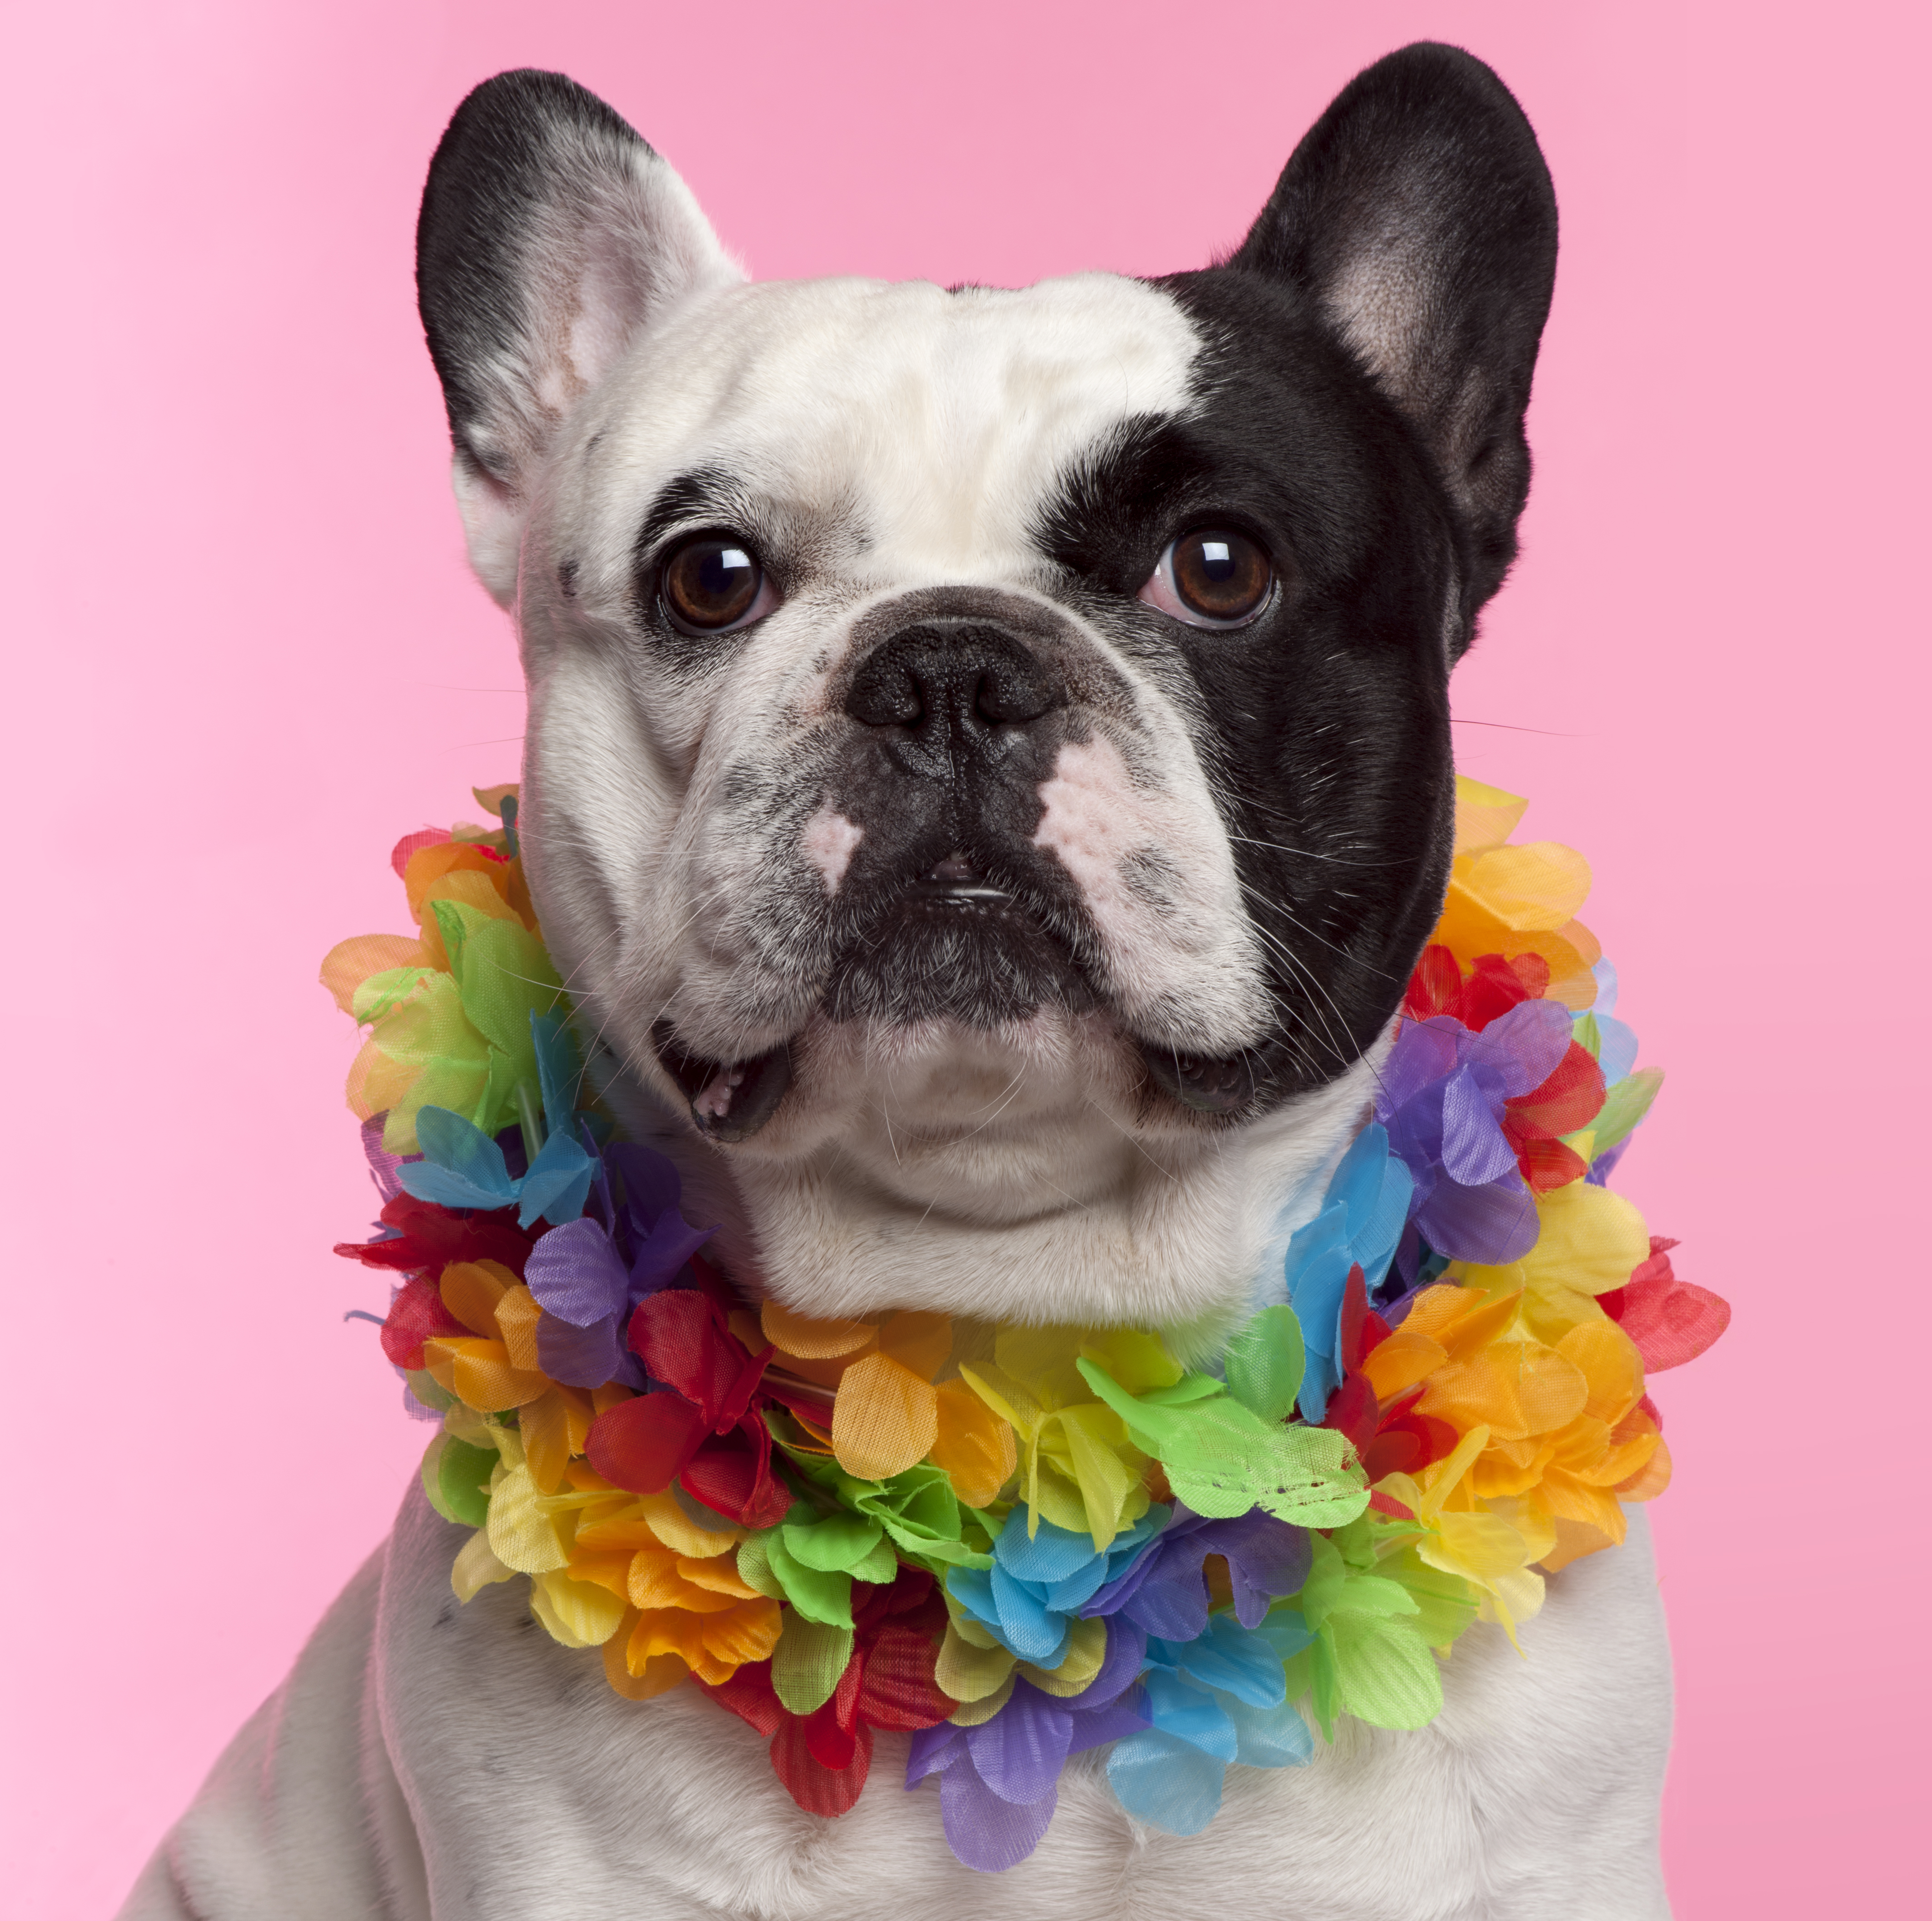 french-bulldog-3-years-old-wearing-hawaiian-lei-PDUV9VN-1